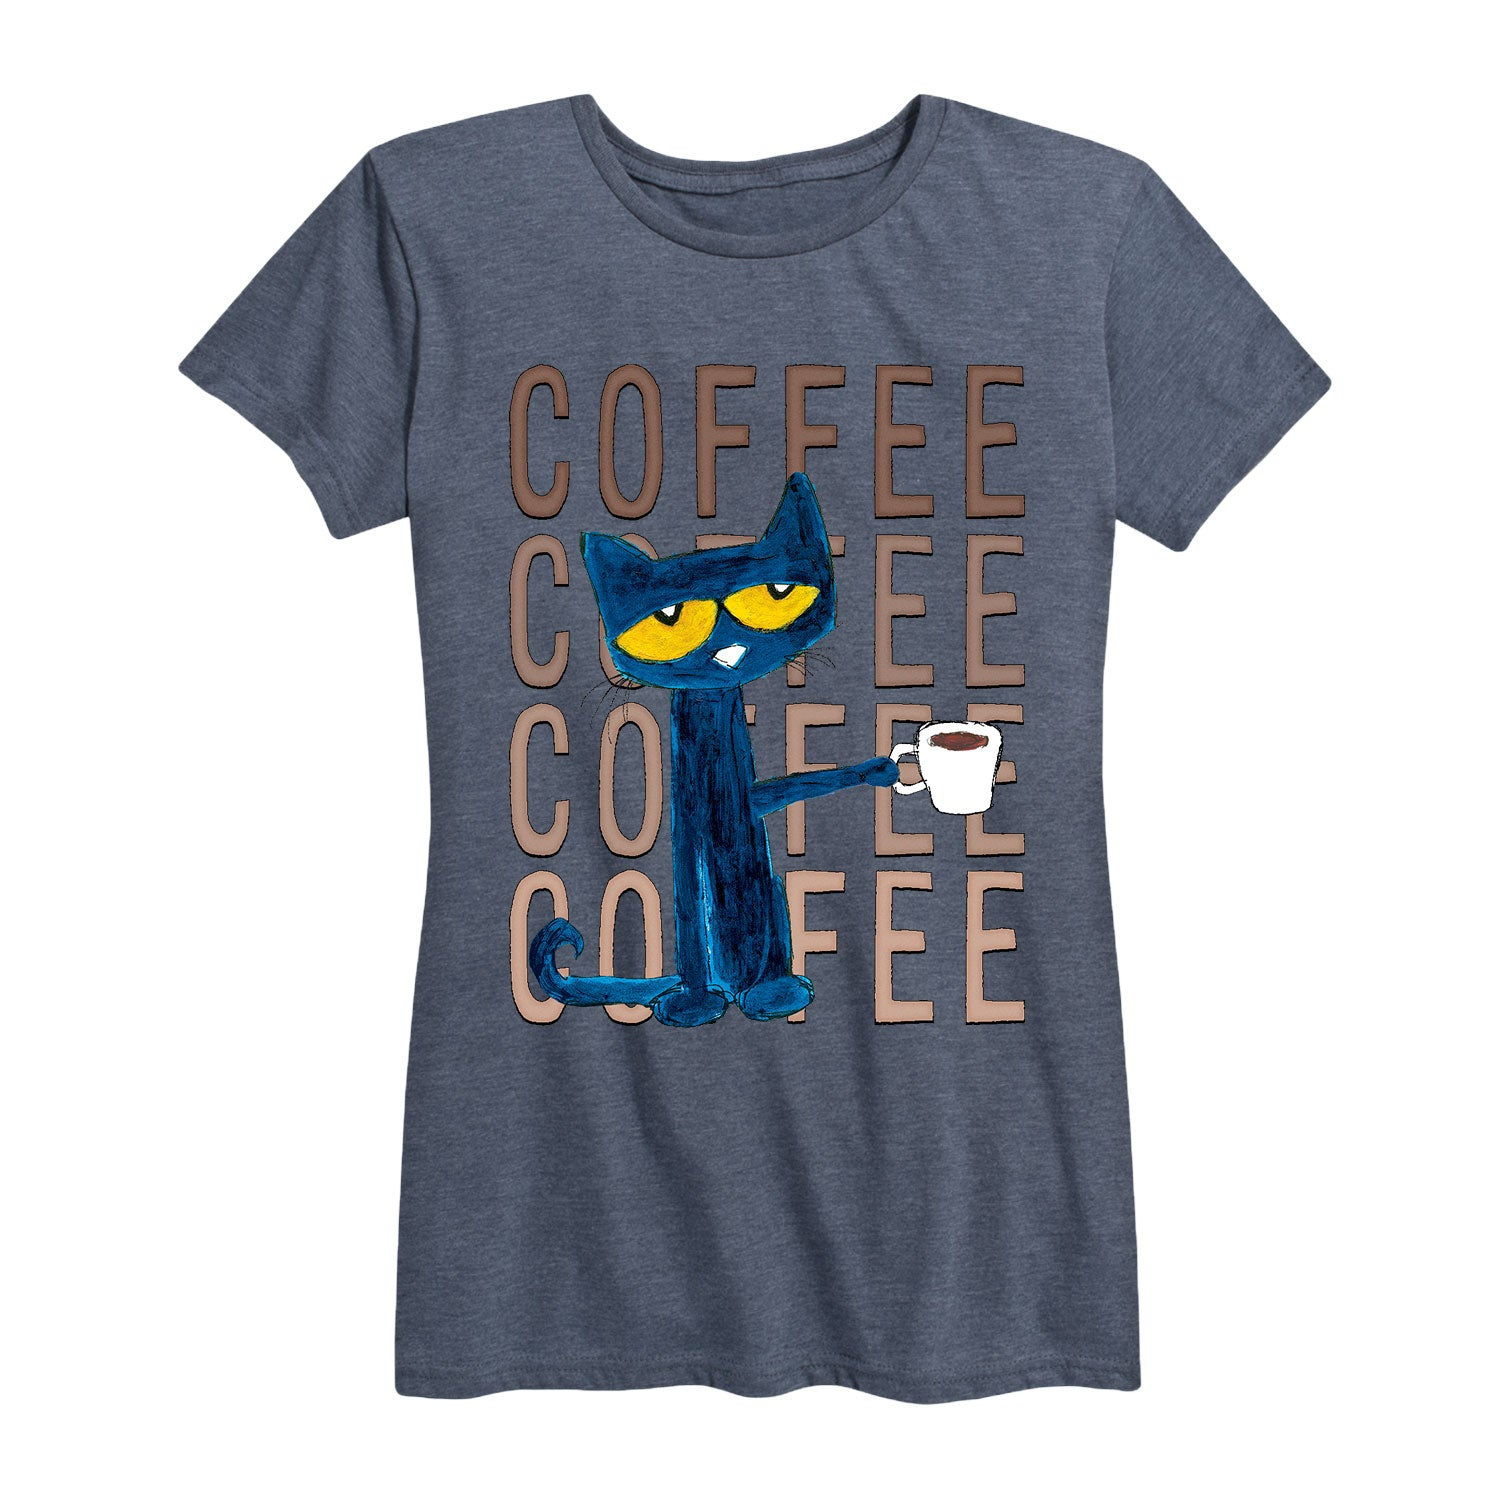 Pete With Coffee - Women's Short Sleeve T-Shirt